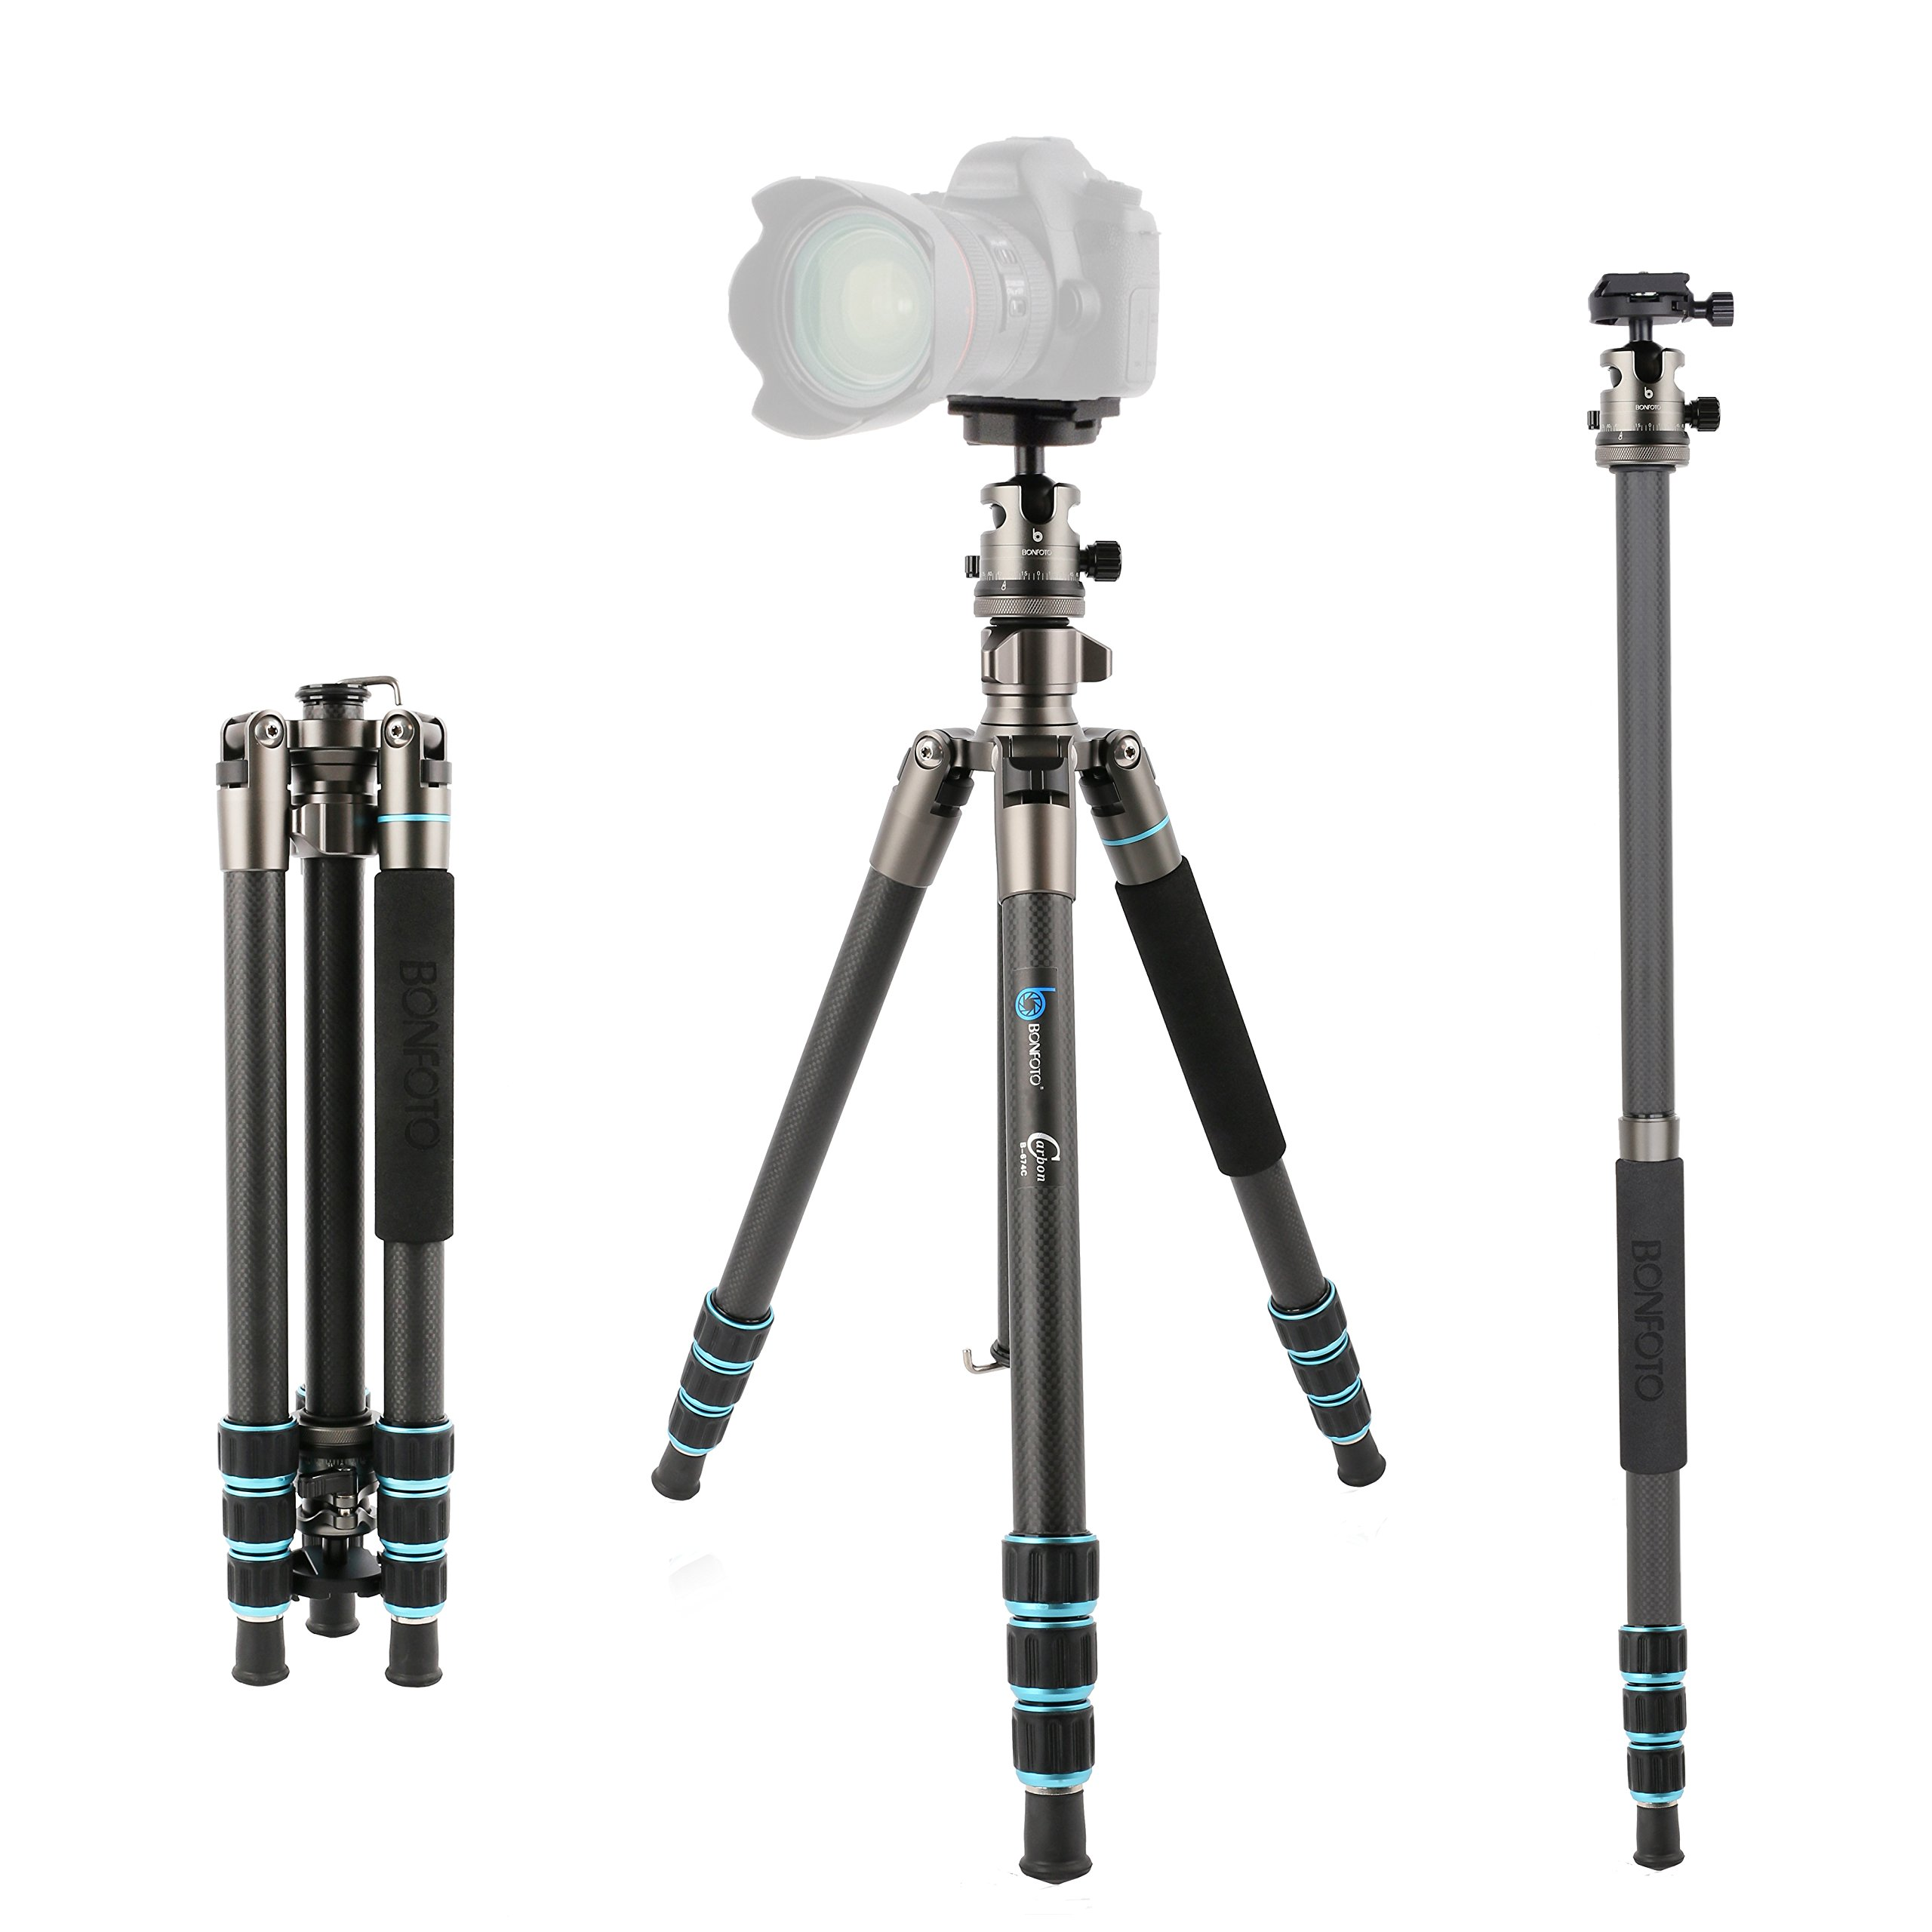 BONFOTO Carbon Fiber 57.6'' B674C Lightweight Portable Compact Travel Tripod and Monopod with 360 Degree Ball Head + 1/4'' Quick Release Plate + Carry Bag for Canon Nikon Sony DSLR Cameras